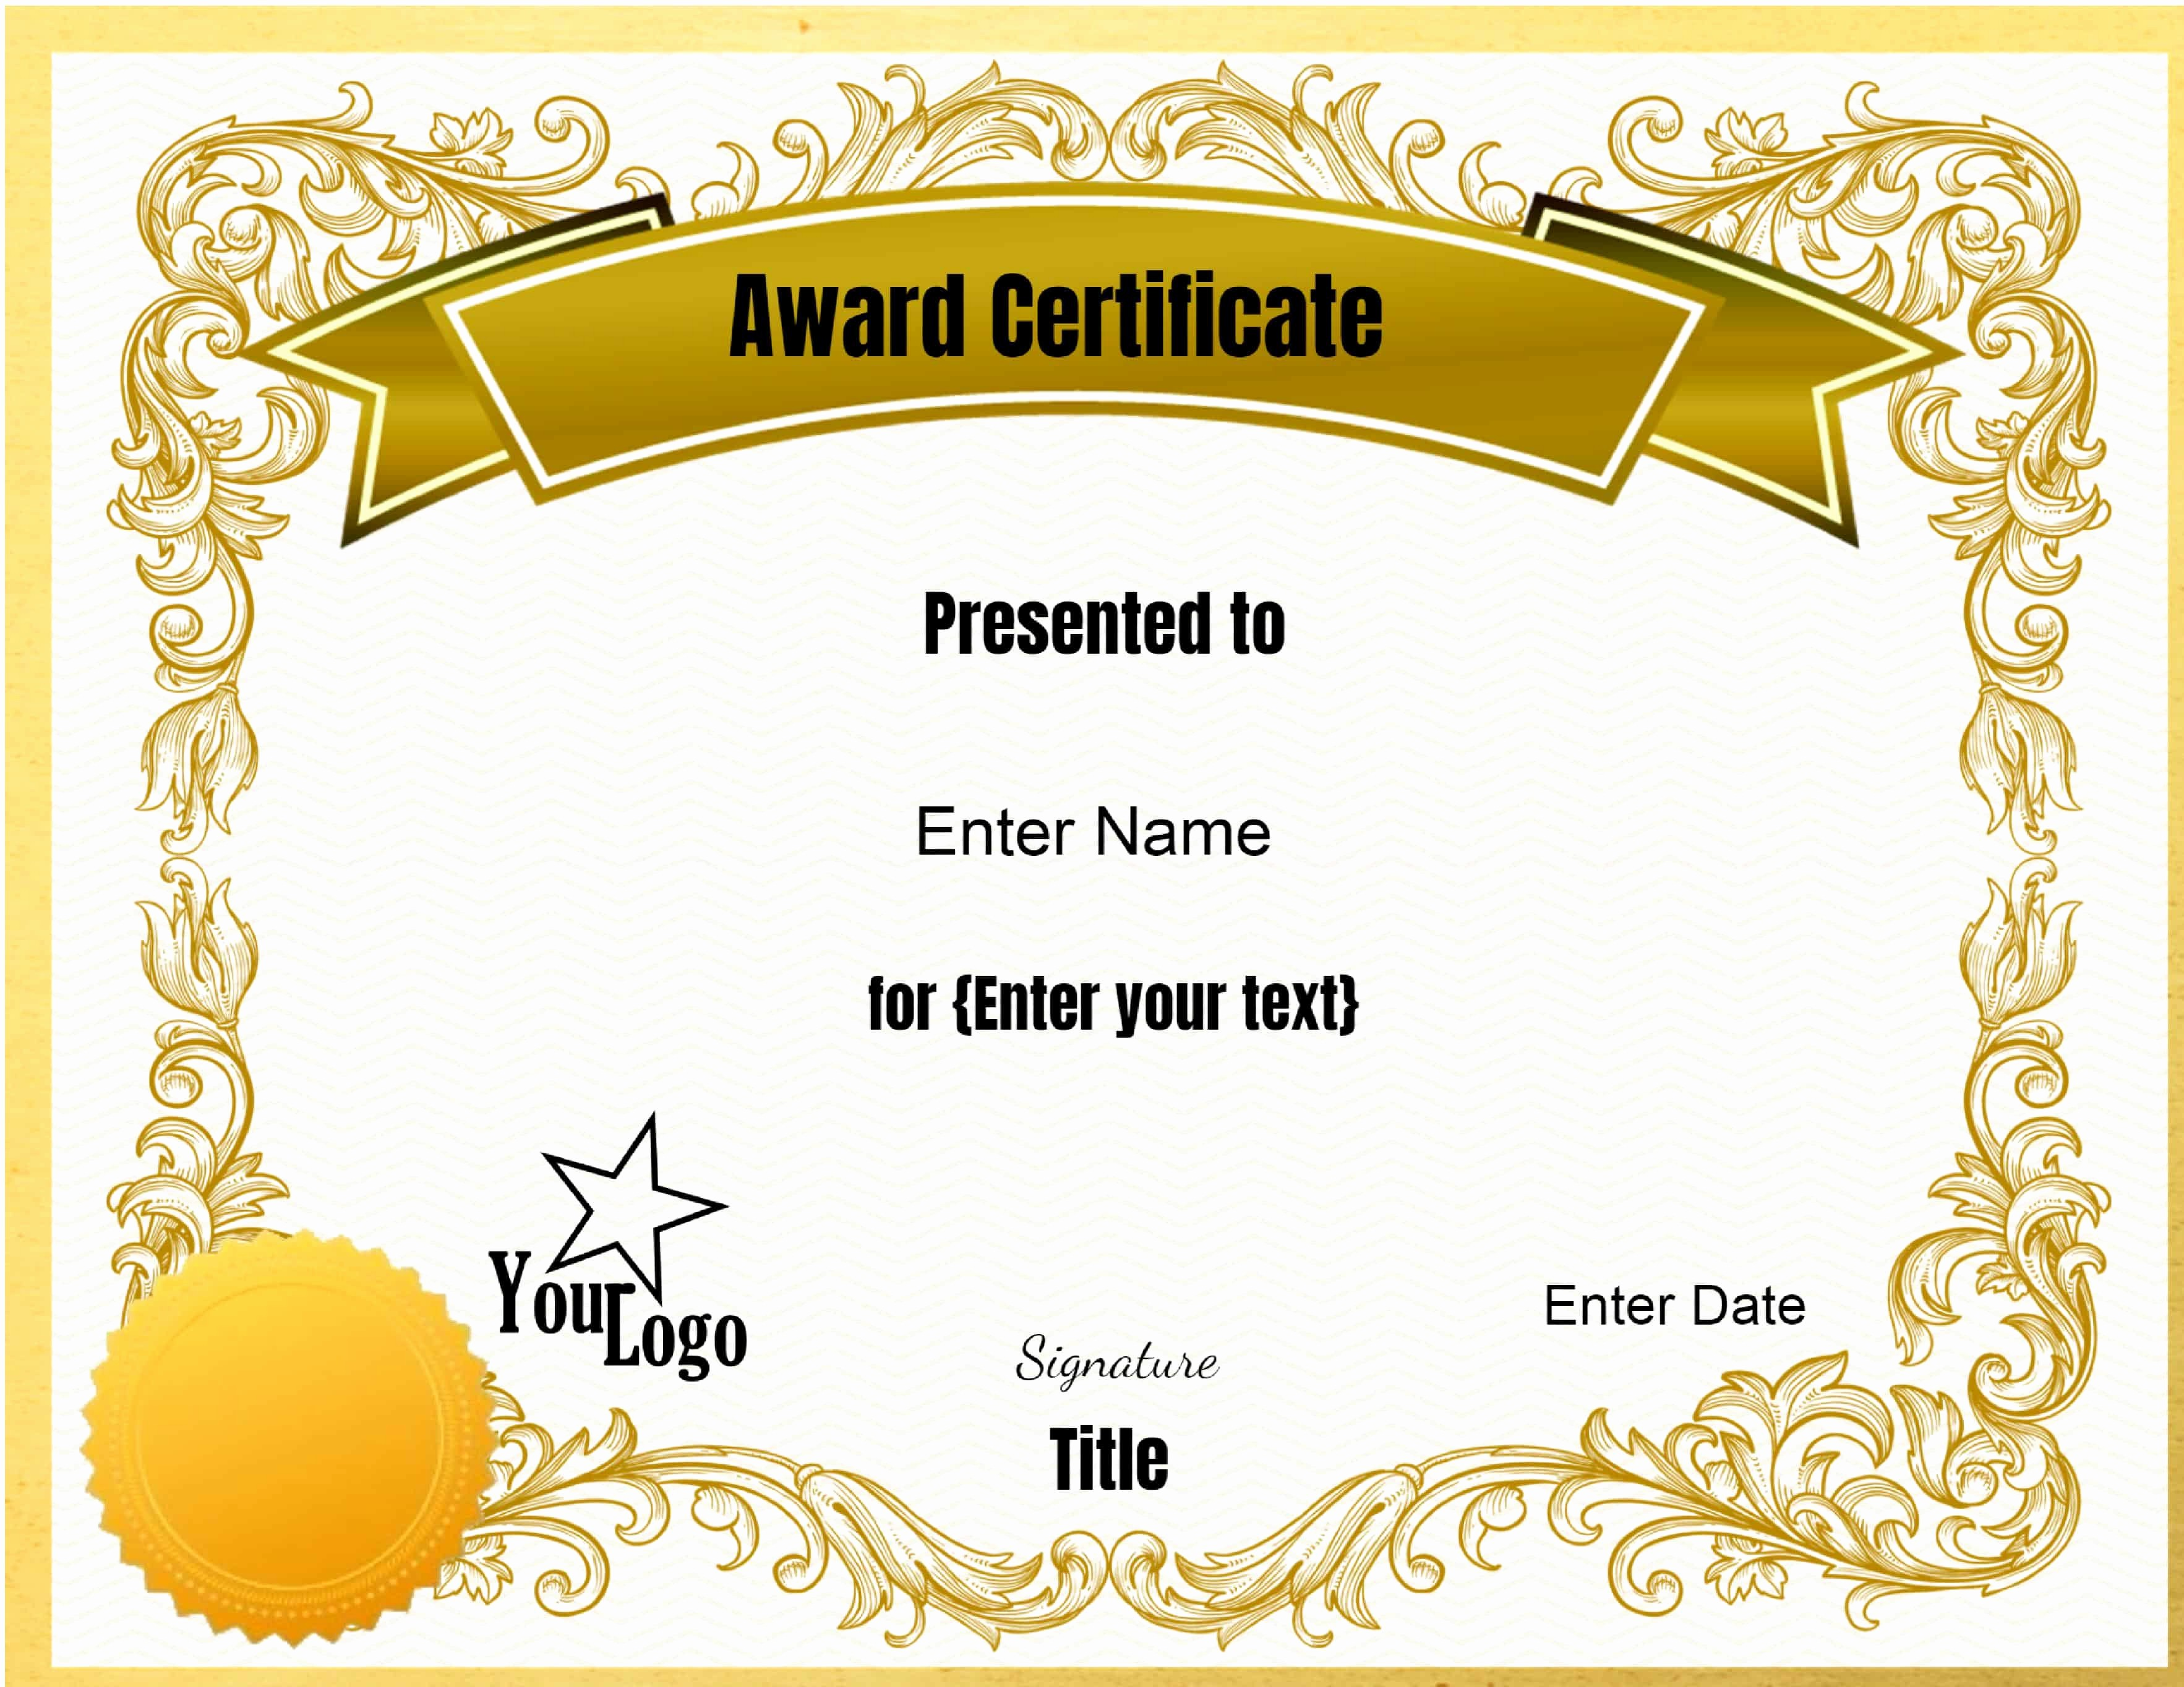 Online Certificate Maker with Logo Elegant Certificate Templates